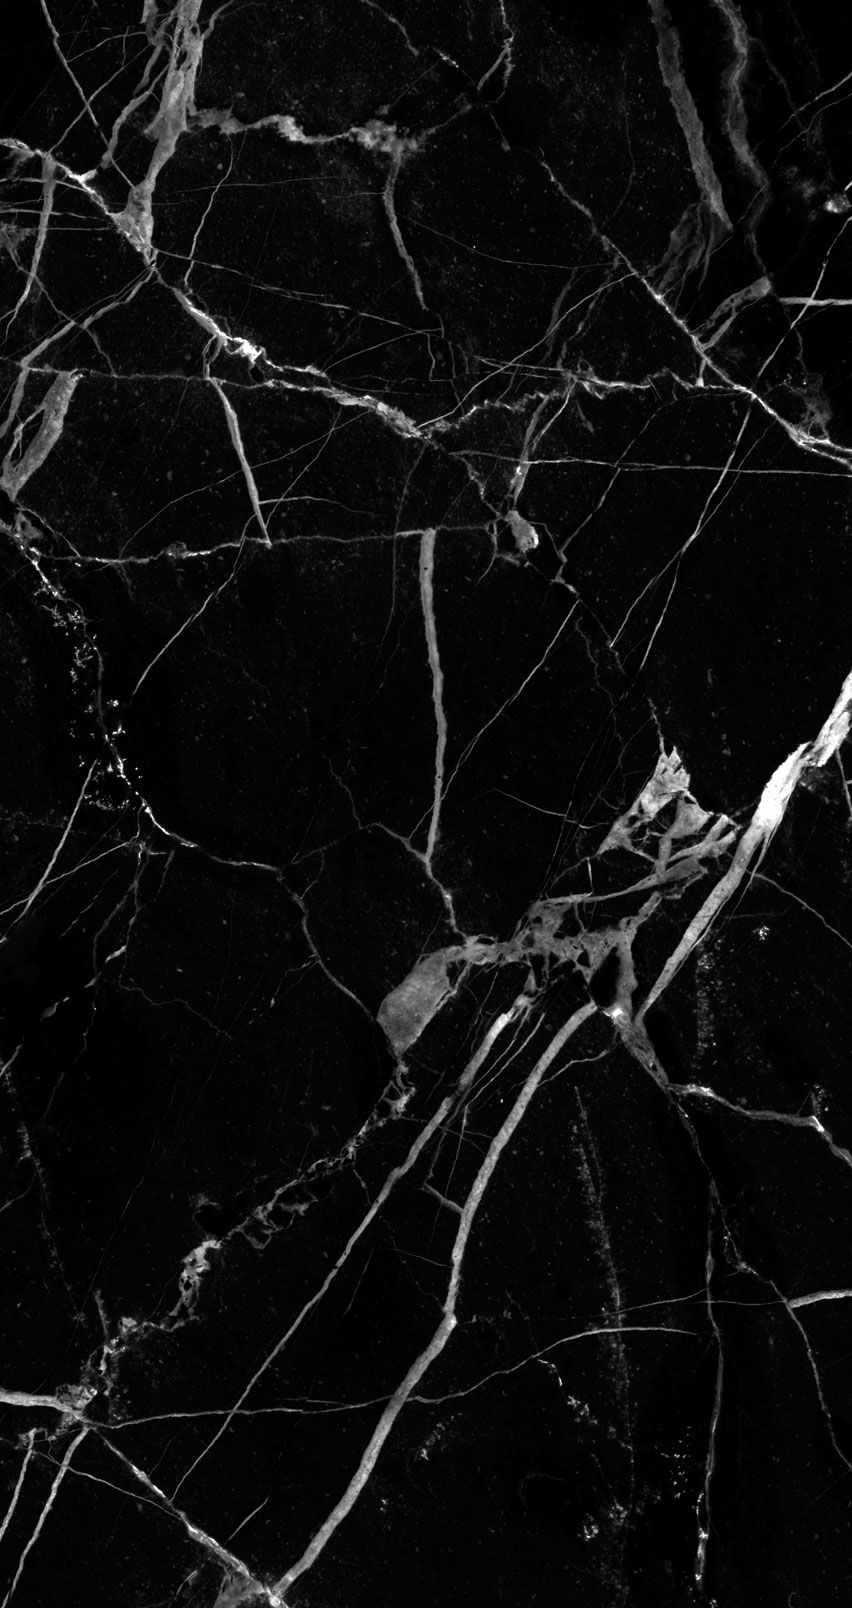 Wallpaper_iPhone6BlackMarble.jpg 852×1,608 píxeles ...